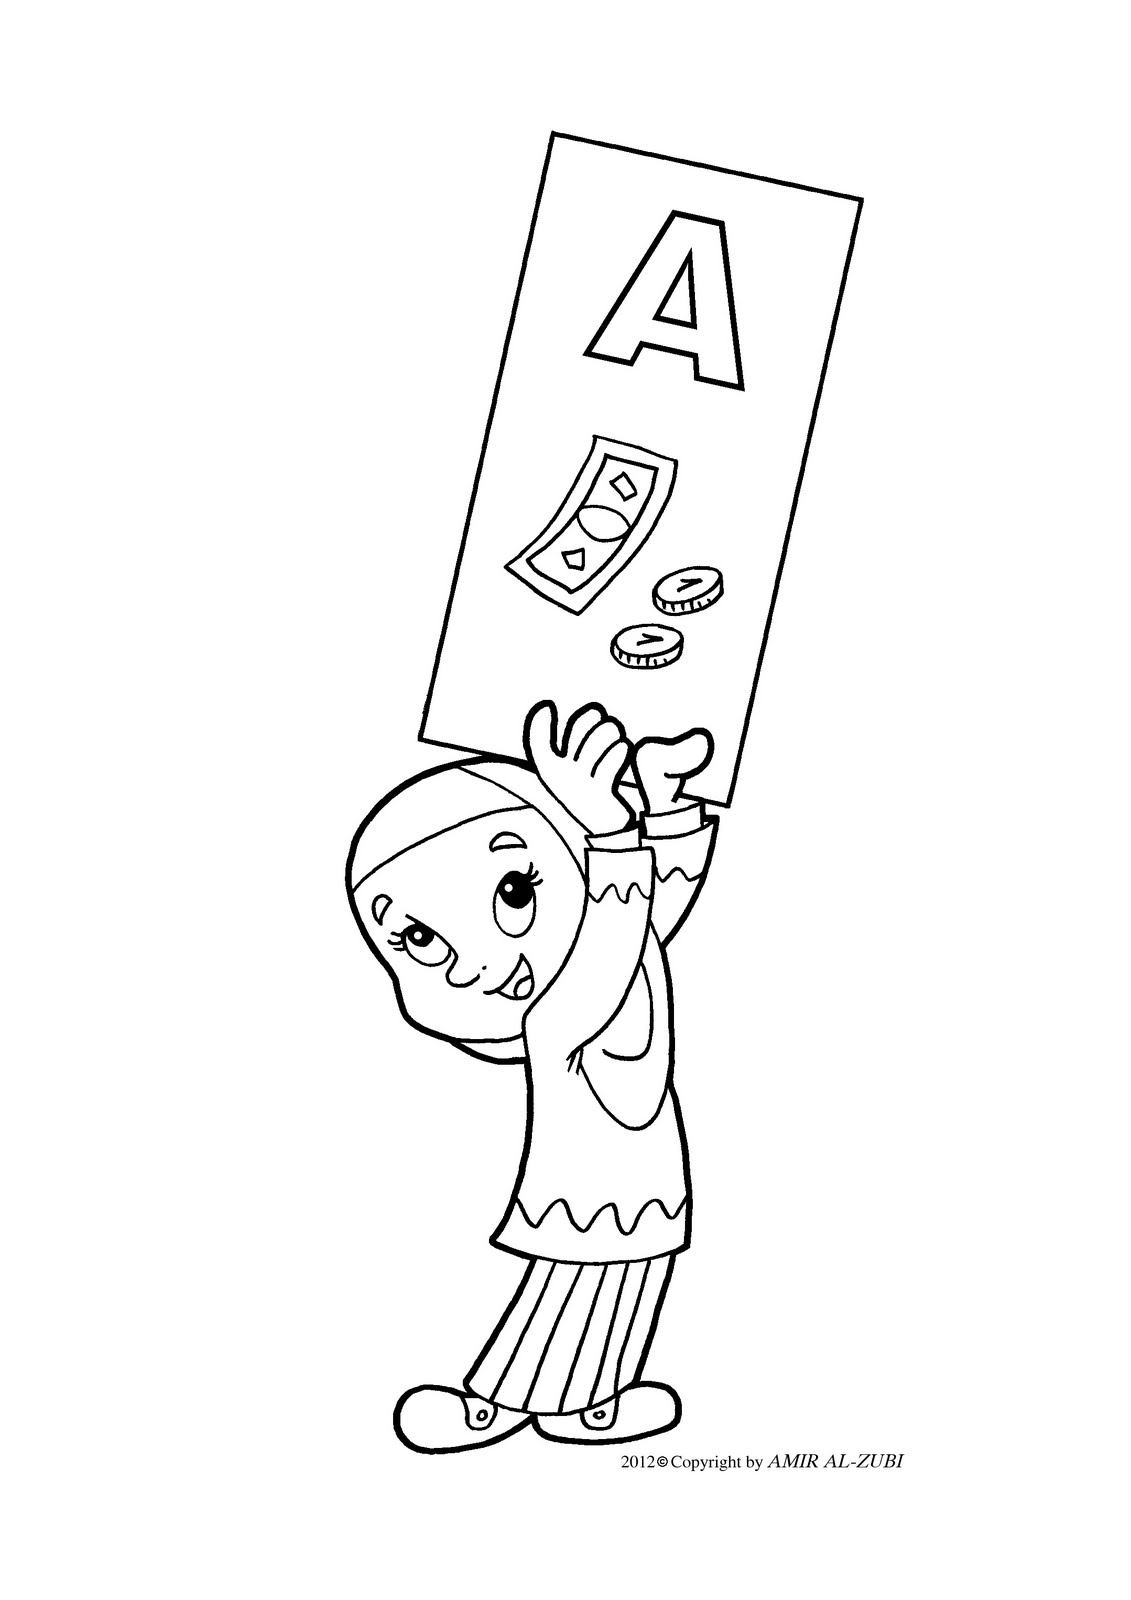 New Muslim Kids: A - Coloring Pages